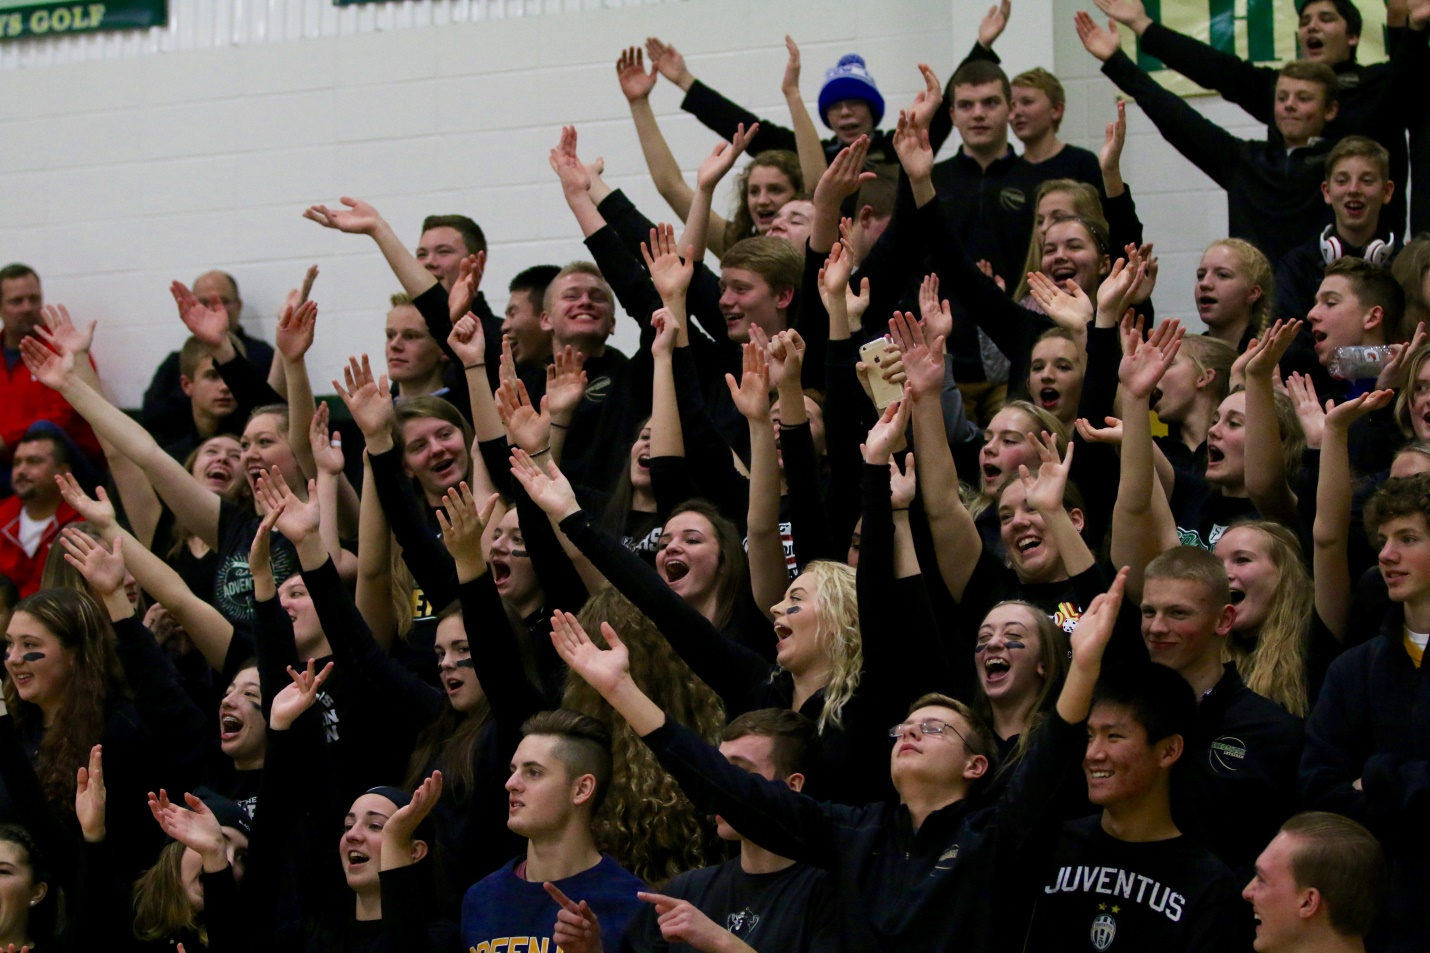 Students cheering their fellow students at a basketball game